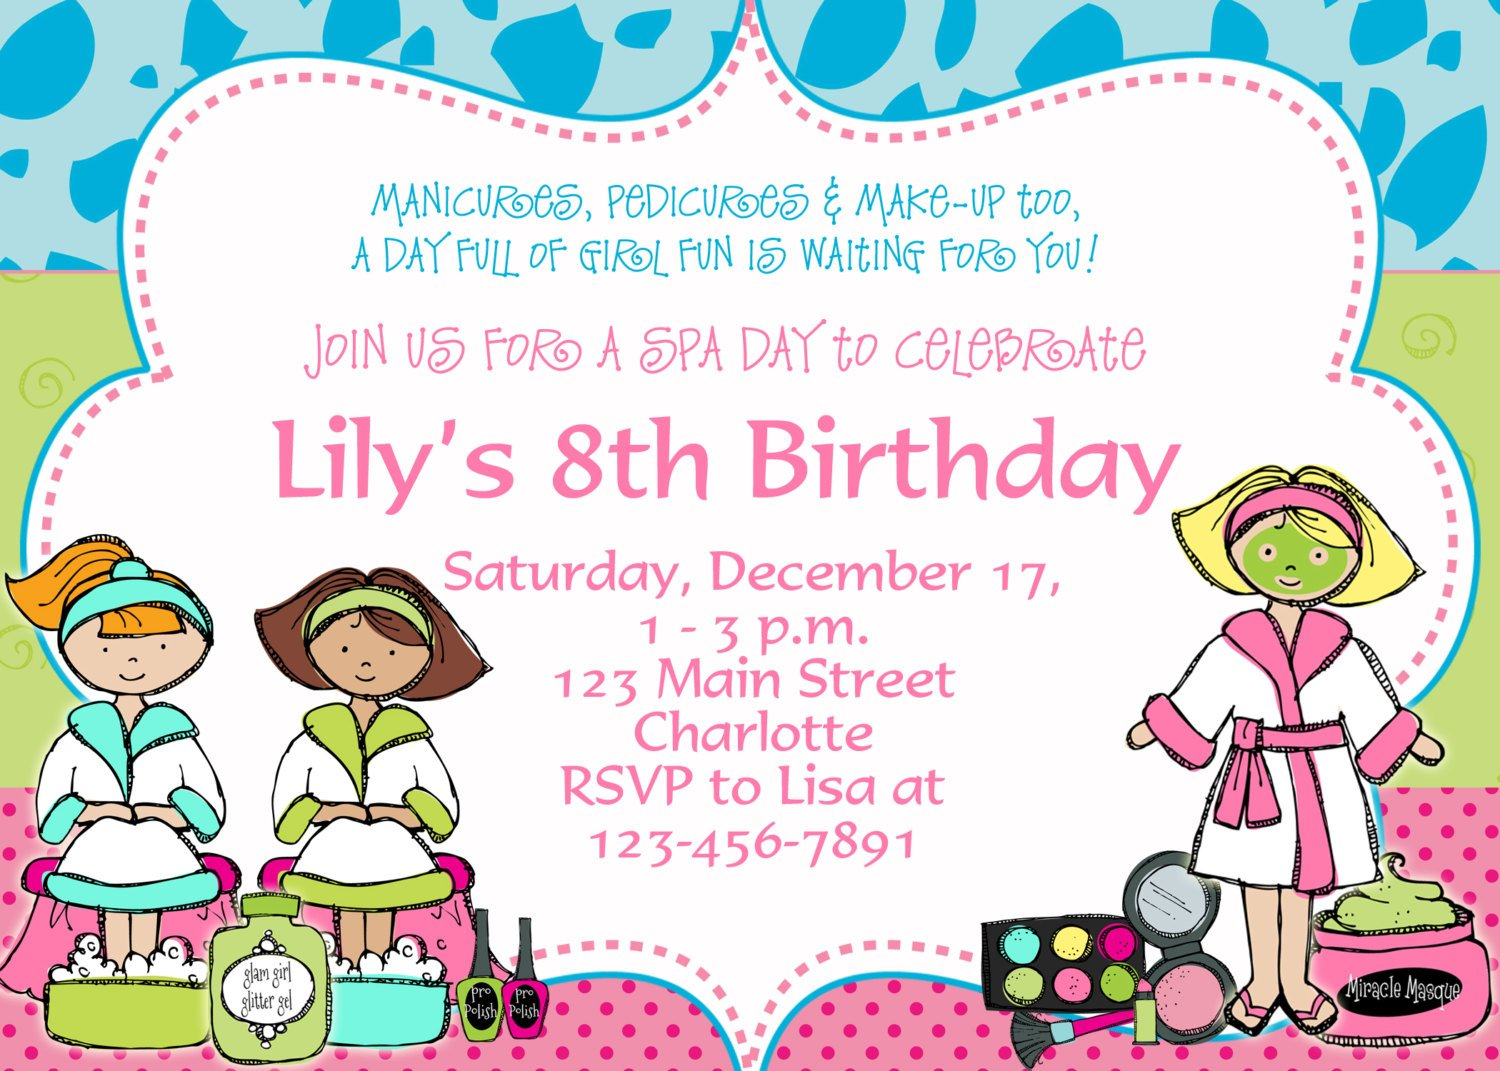 Free Birthday Party Invitation Templates – Free Party Invitation Designs